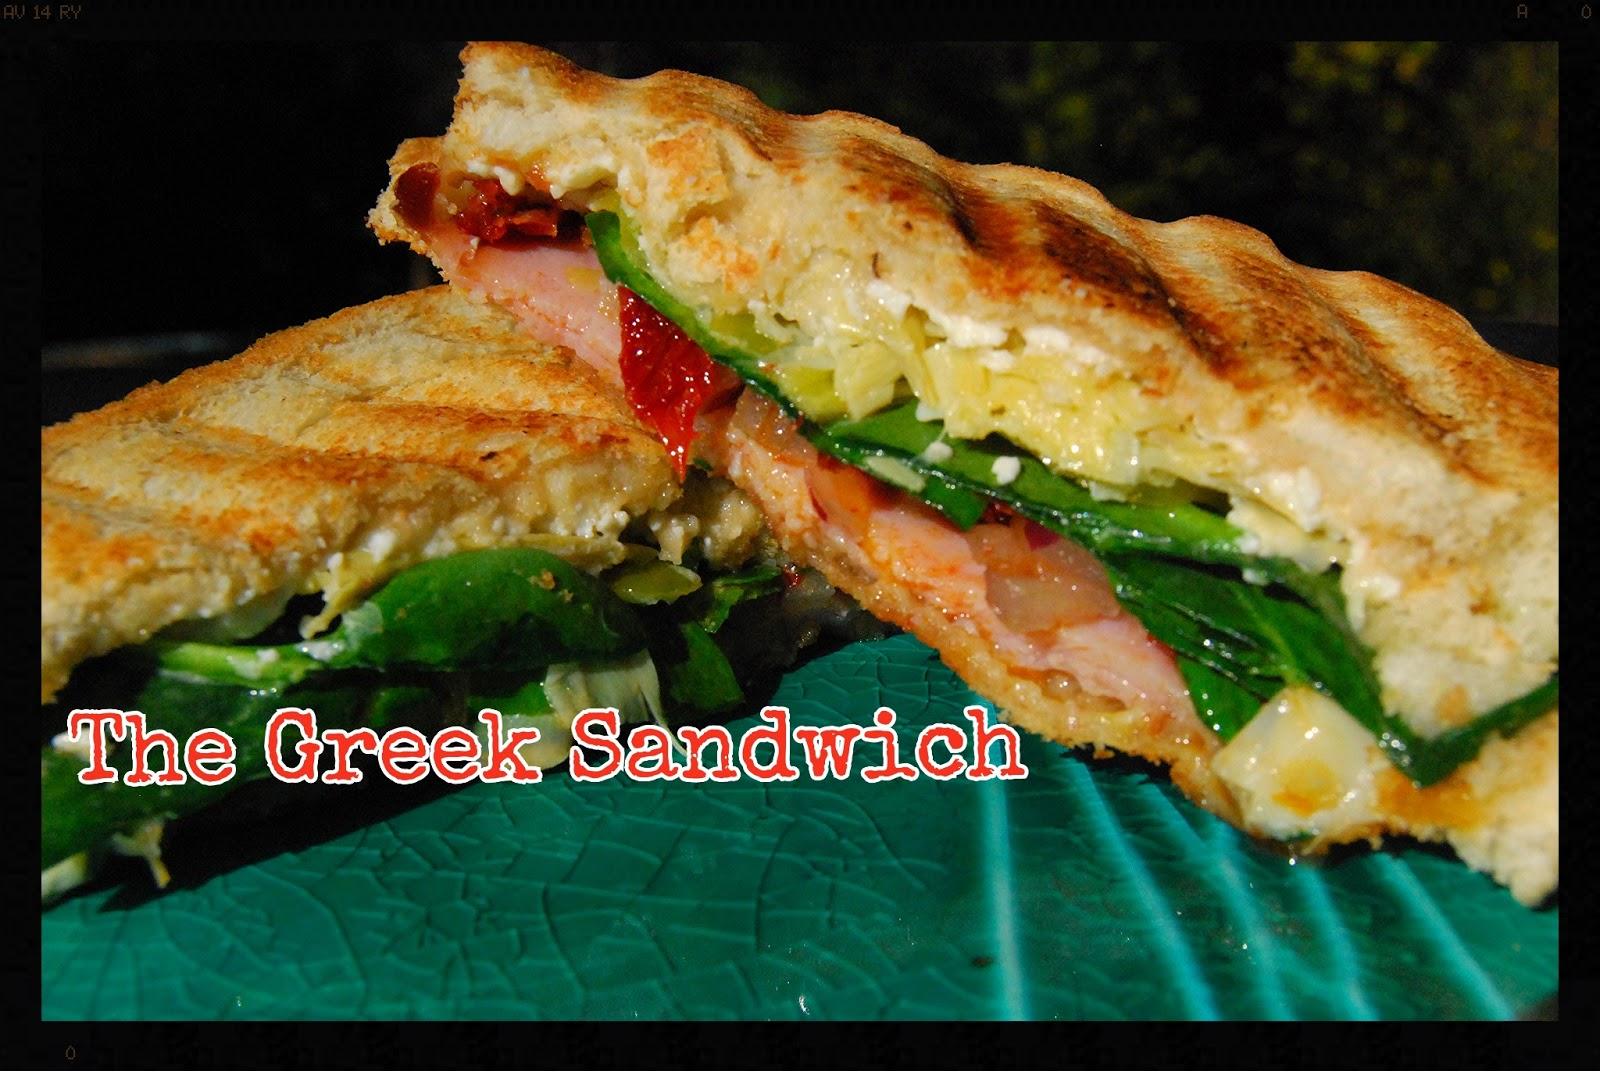 The Greek Sandwich